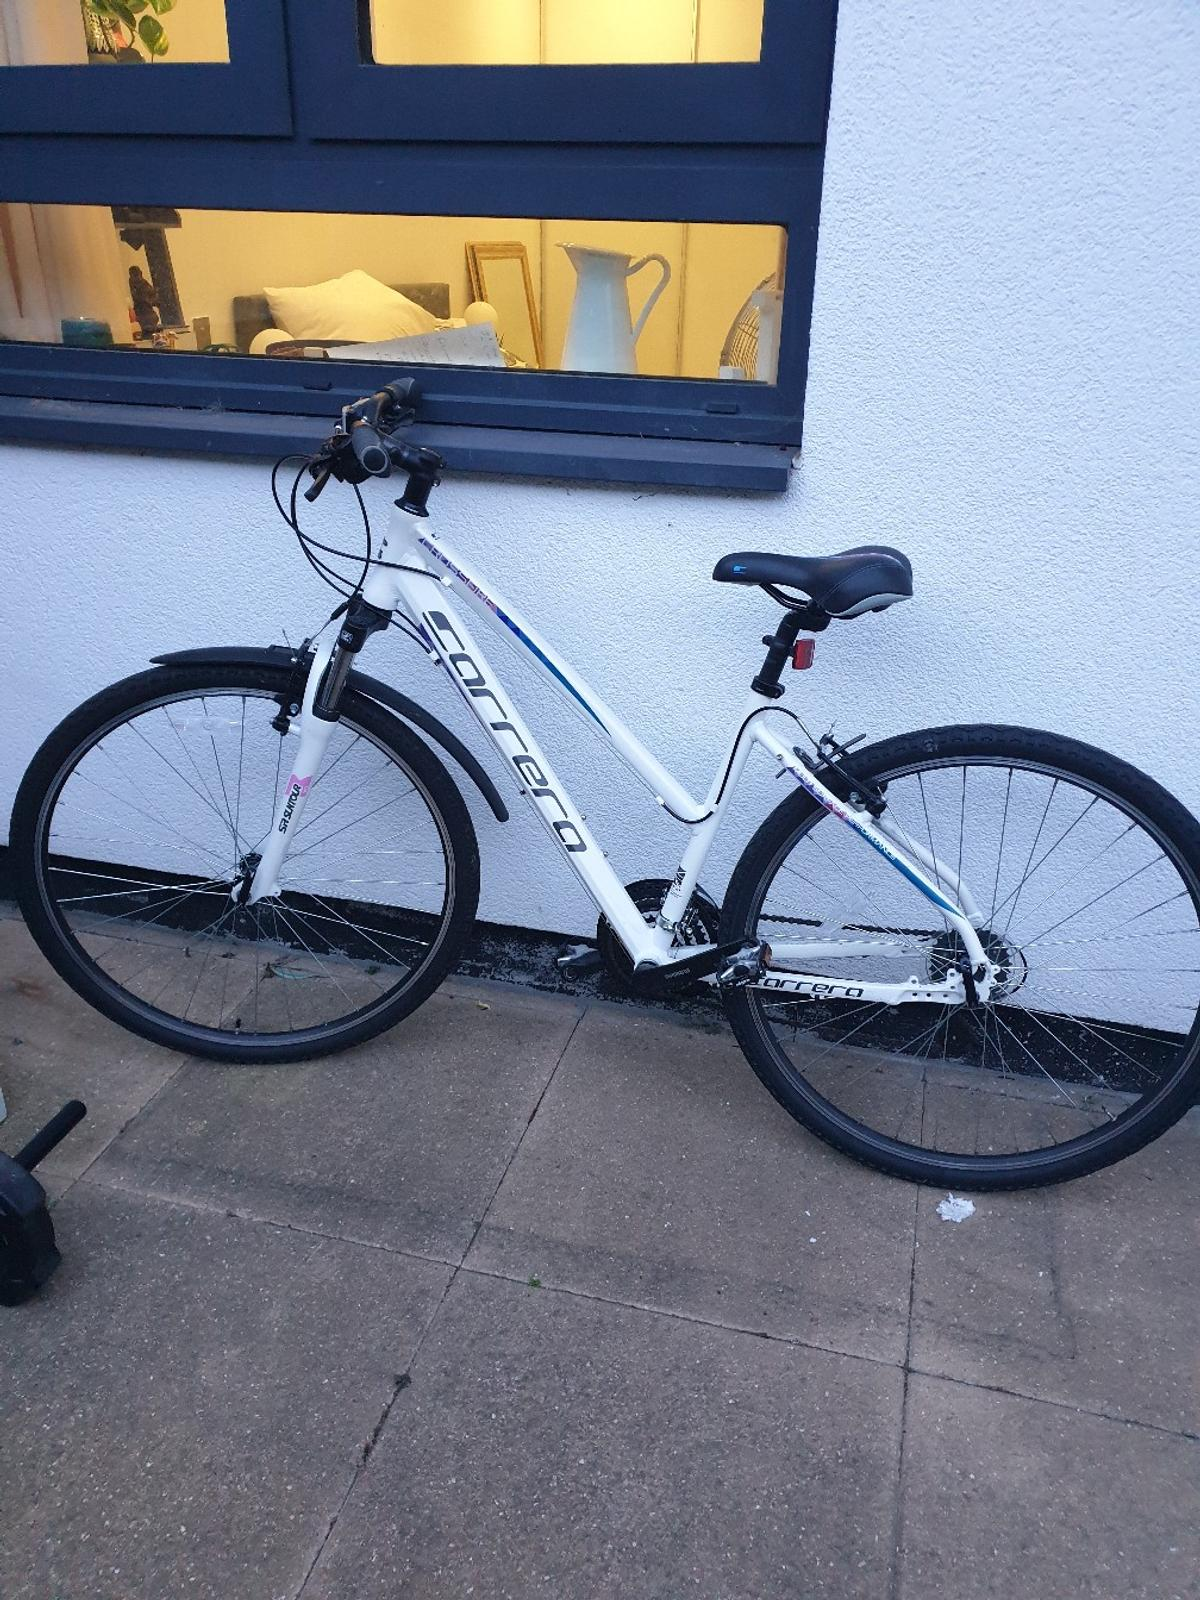 "Bike is only 1 year old, and has been used for only one summer so it's in a good condition. Original price £275.  Bike size is small / 16"" (I am 5'3 / 160cm)"